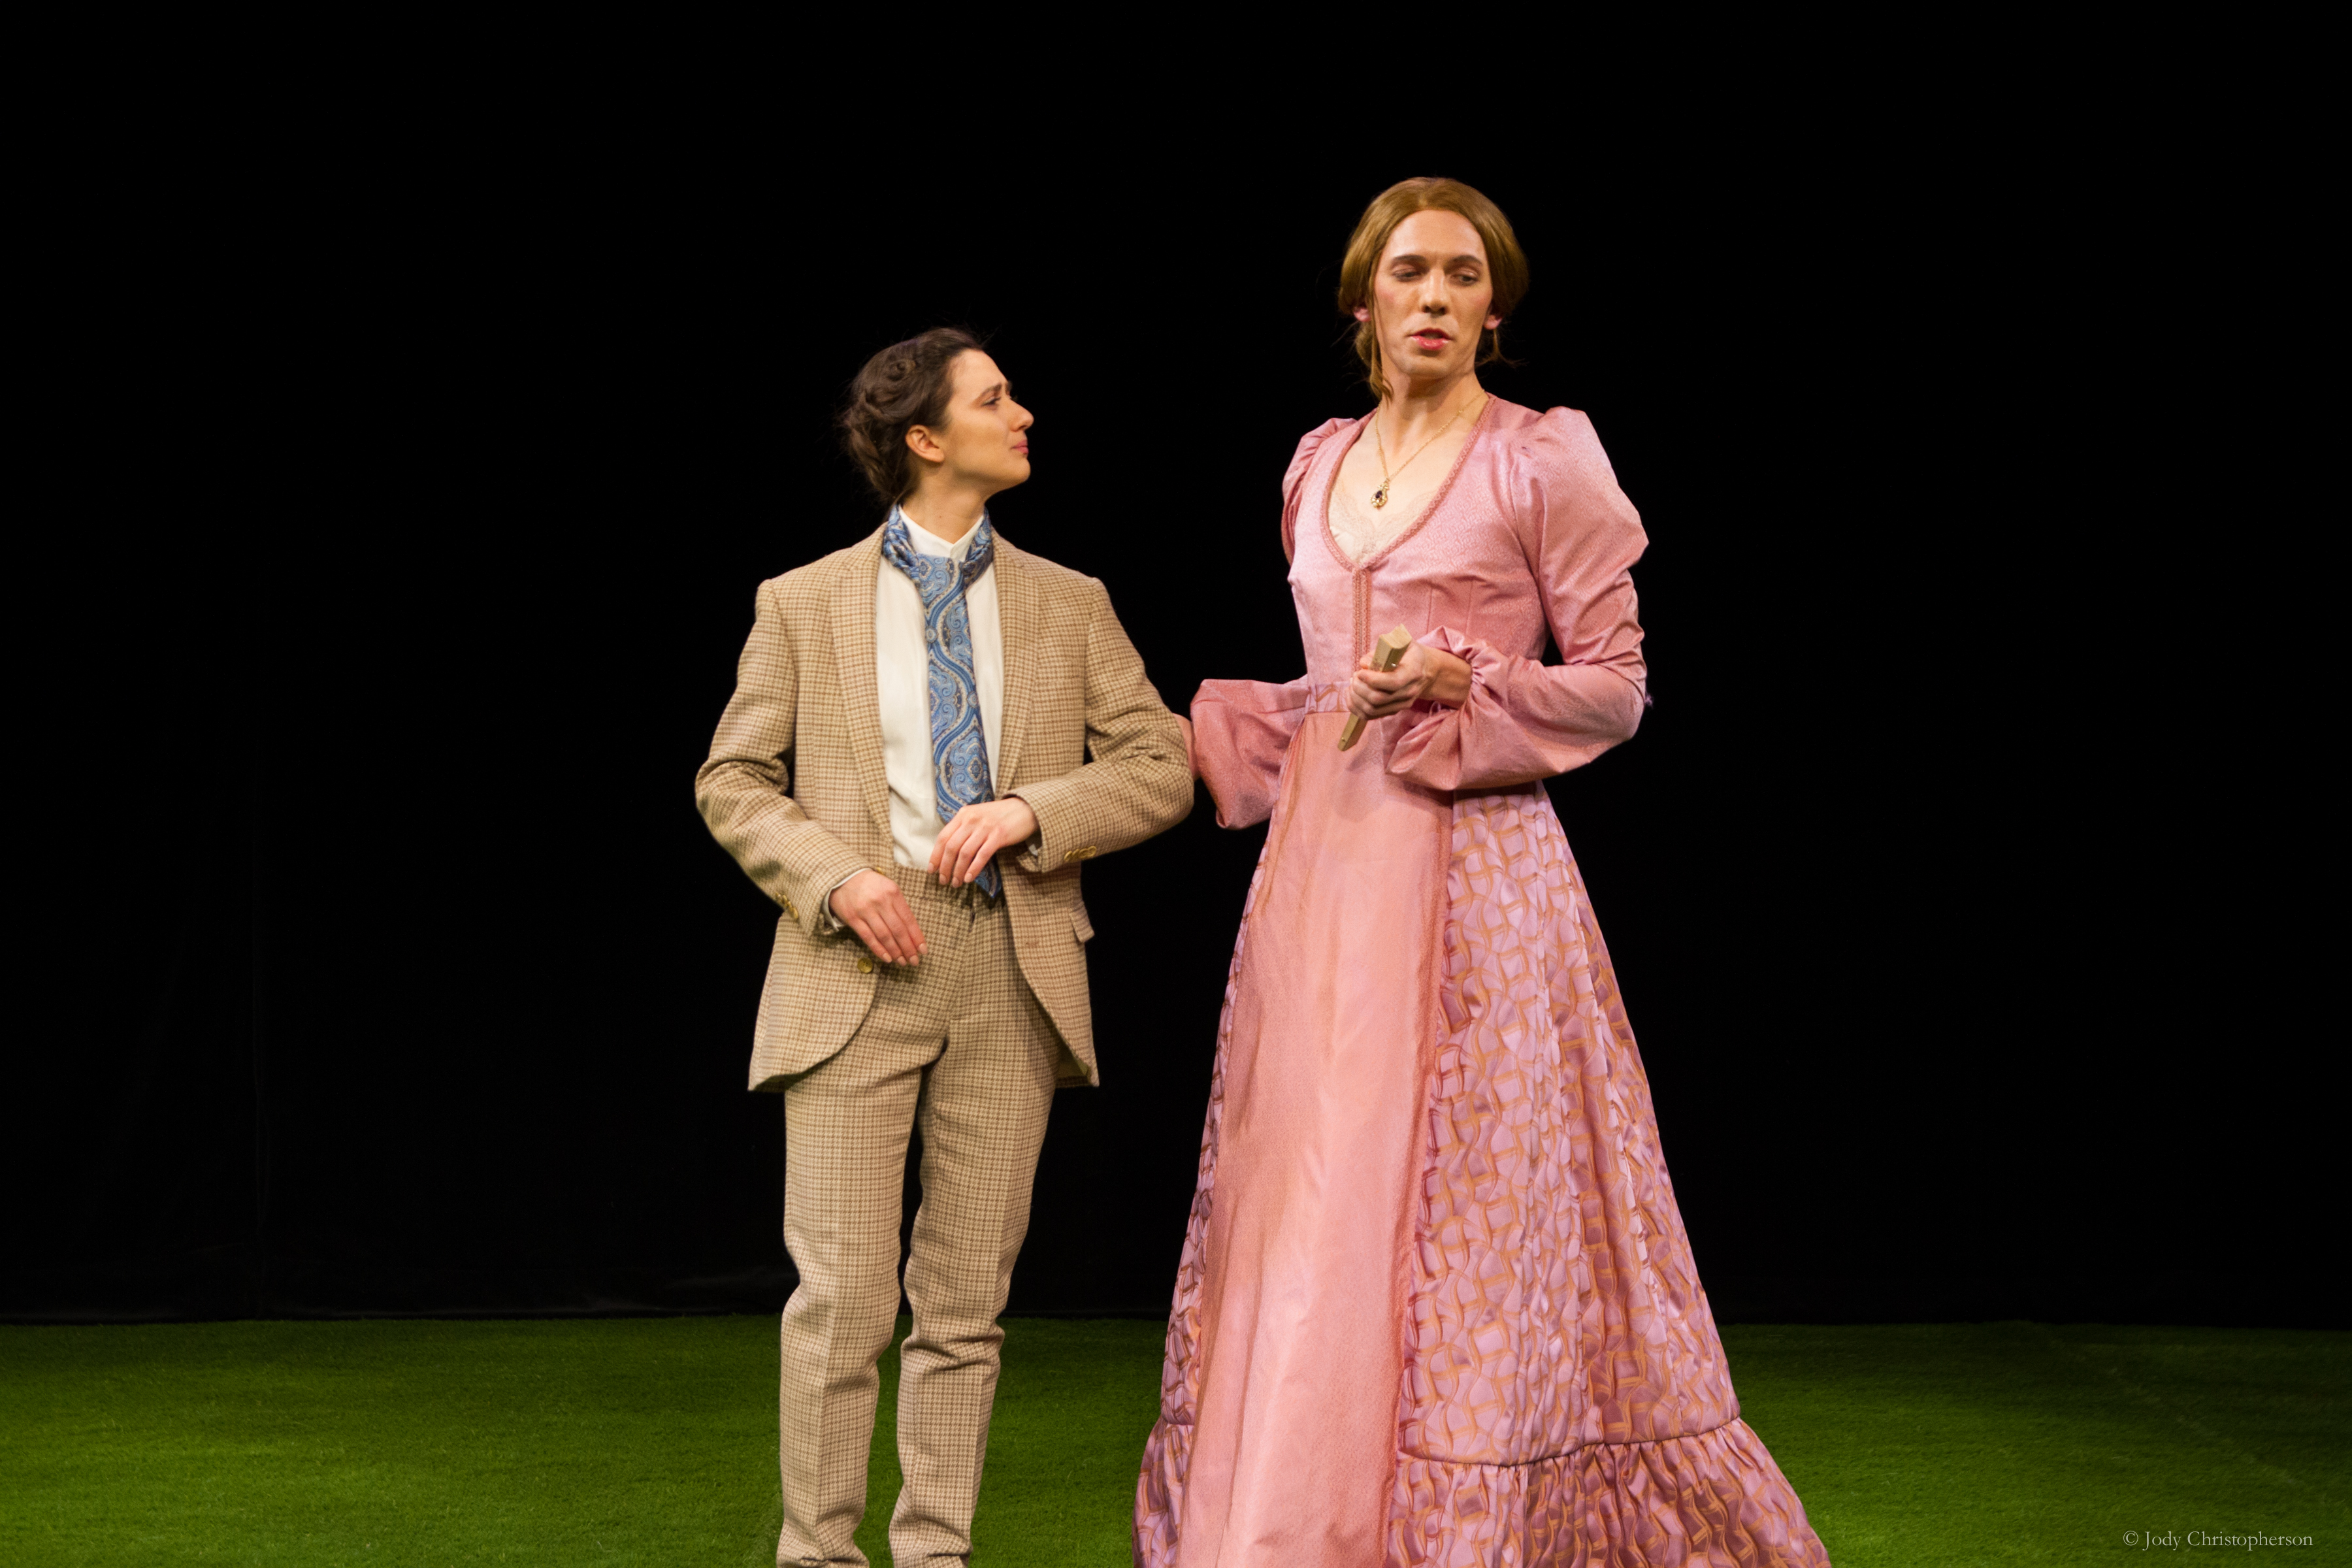 The Importance of Being Earnest 2 photo